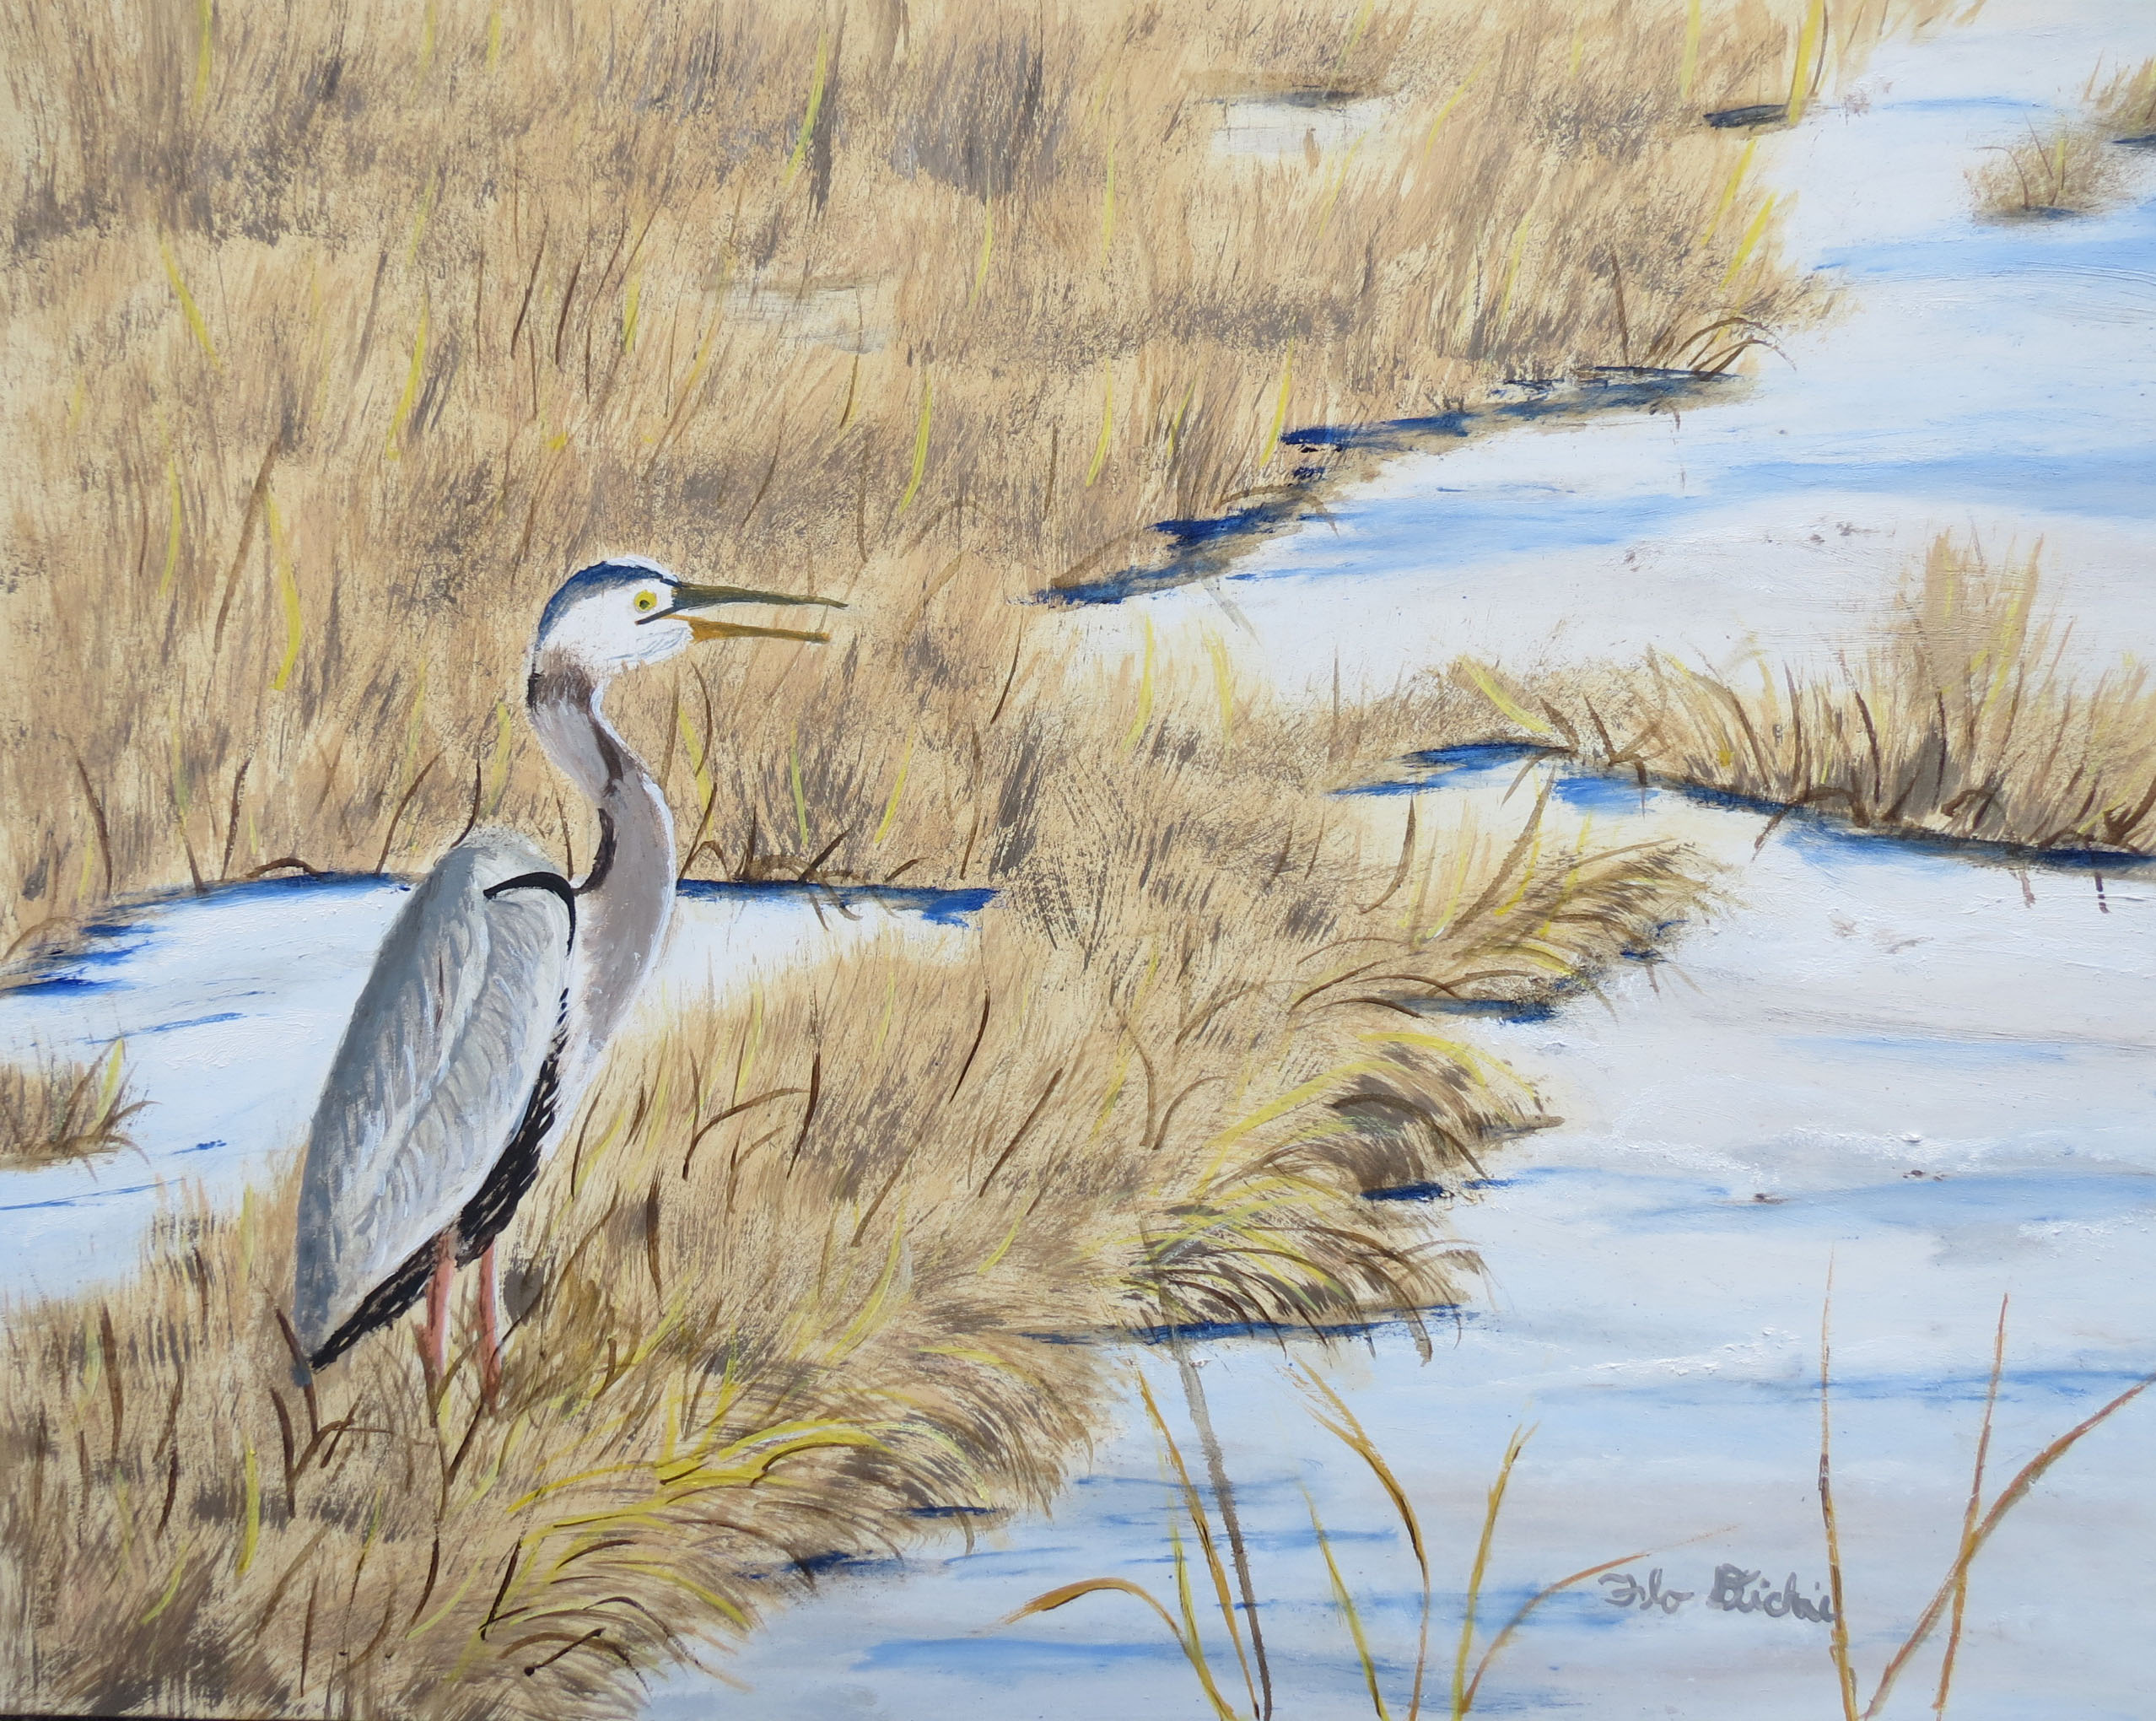 Blue Heron by Stream Sept exh. 14